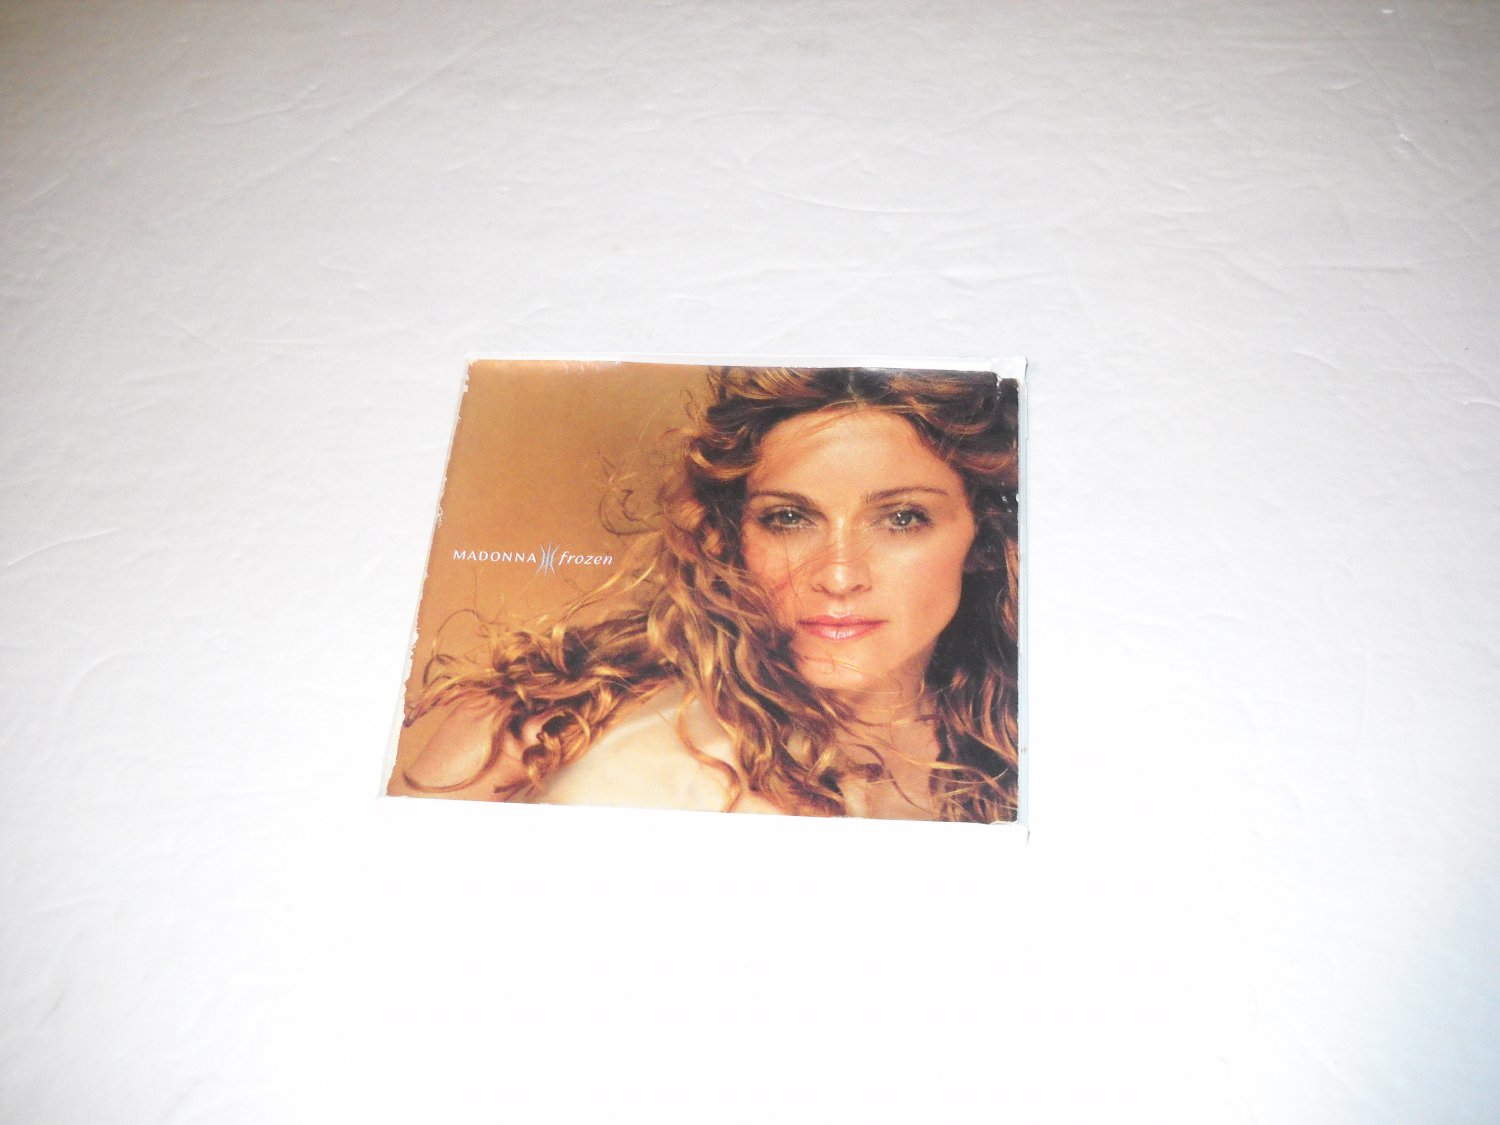 Frozen from Madonna - Audio CD Maxi Single